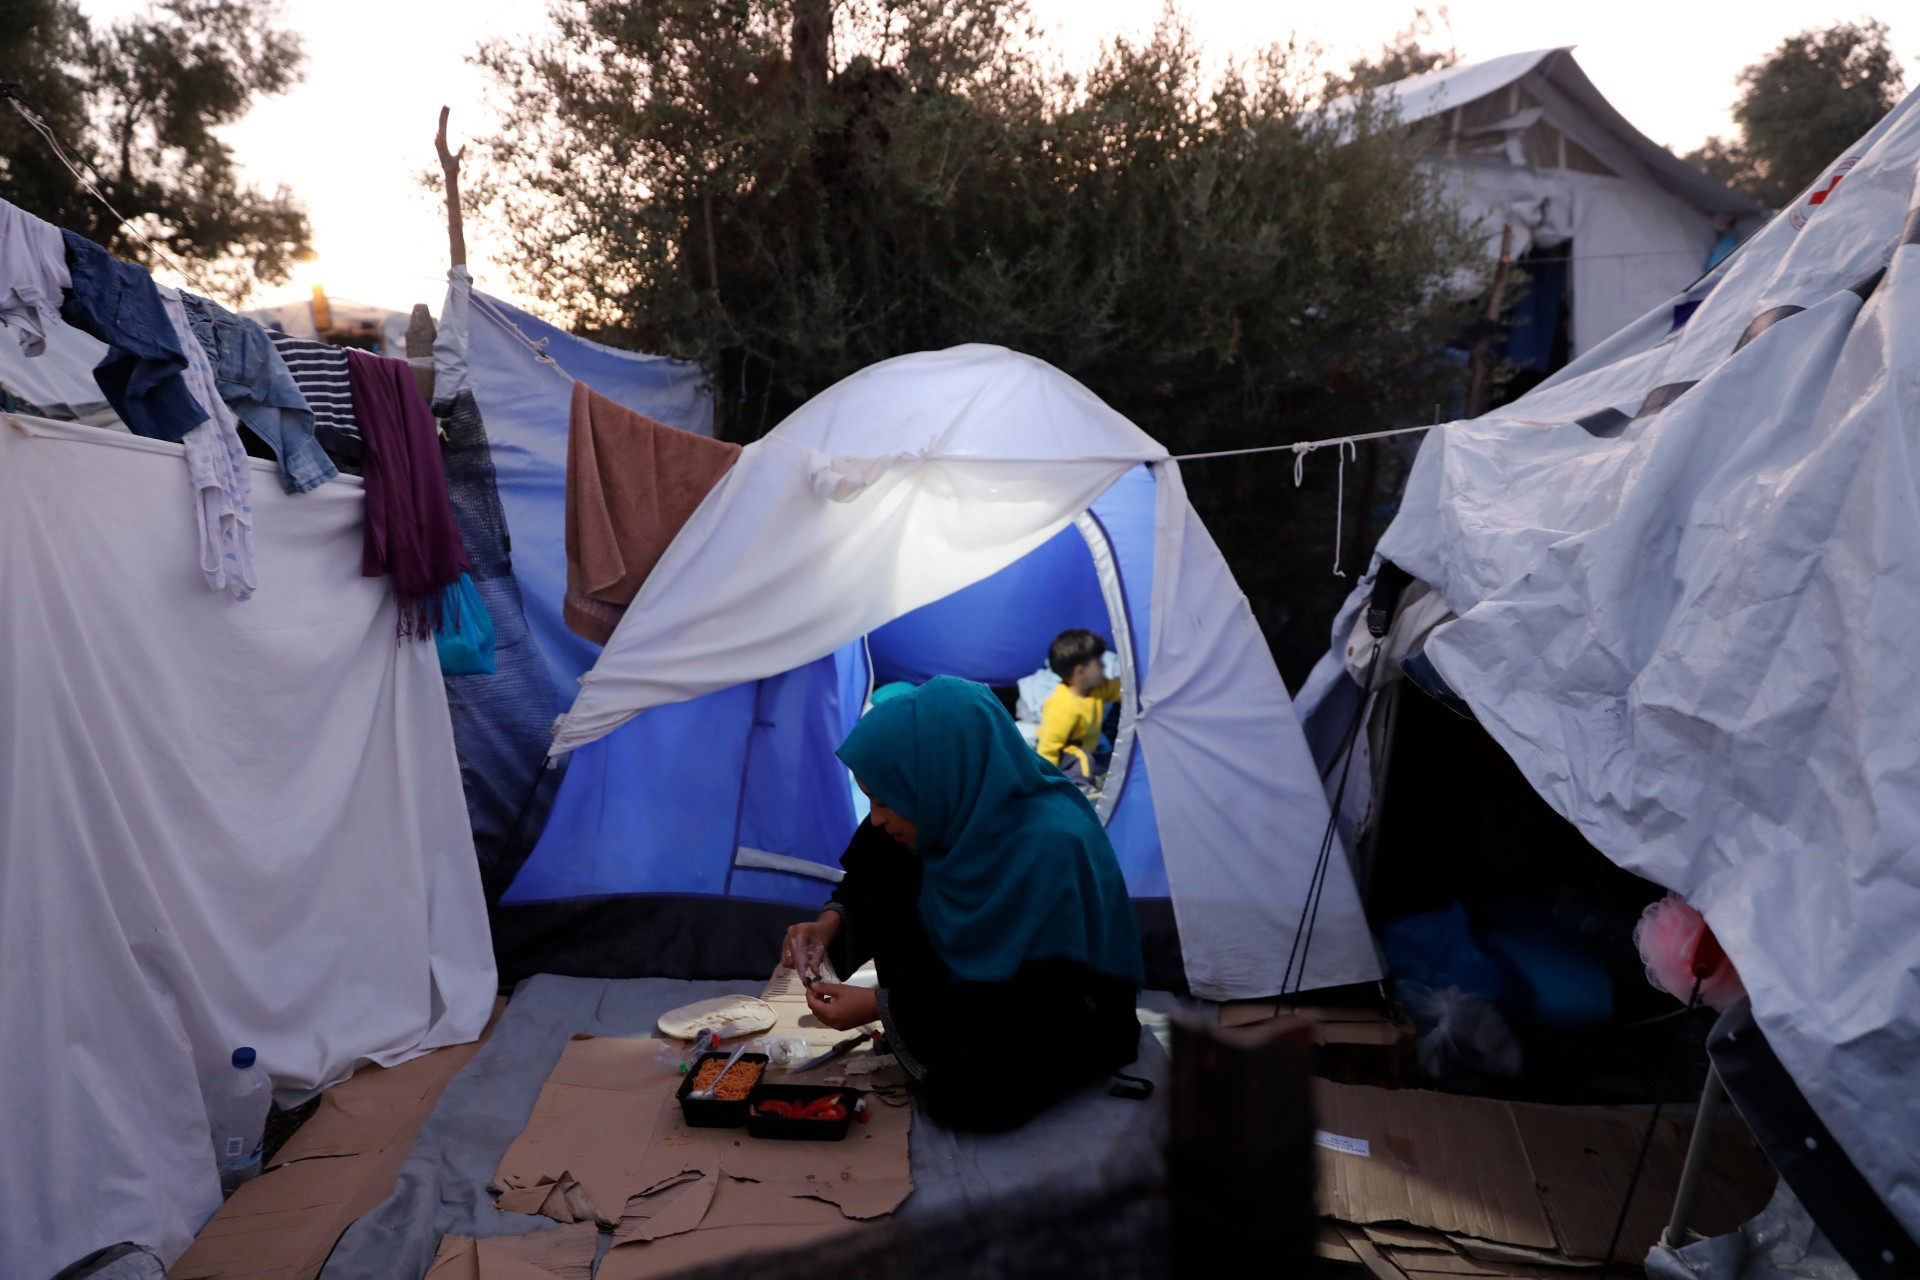 This picture shows the Olive Grove camp, which belongs to the EU refugees of Moria in Lesvos, Greece.